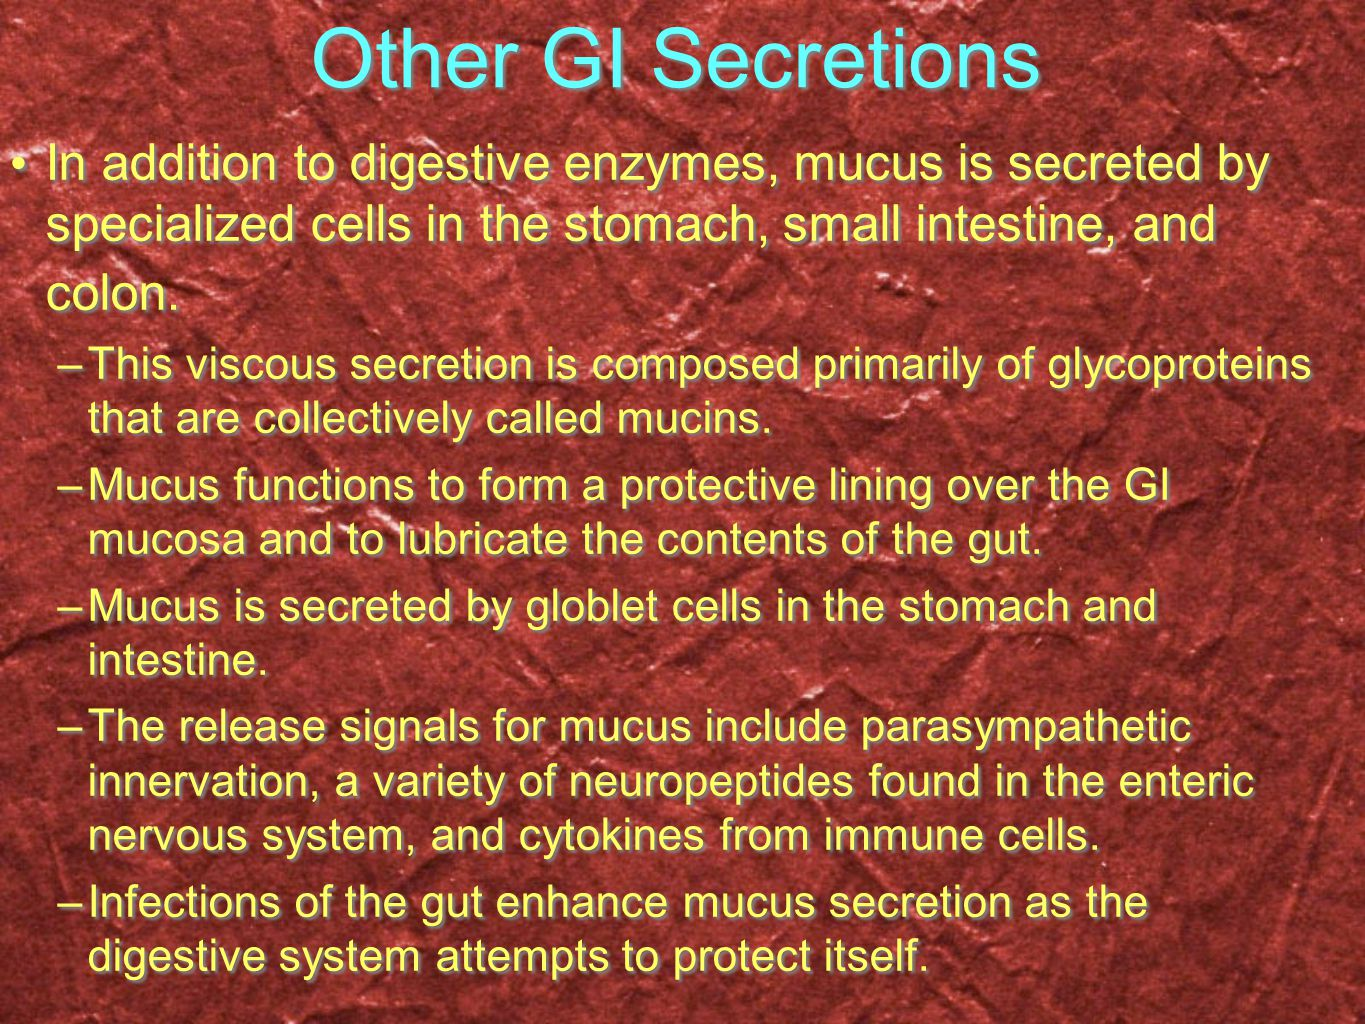 Other GI Secretions In addition to digestive enzymes, mucus is secreted by specialized cells in the stomach, small intestine, and colon.